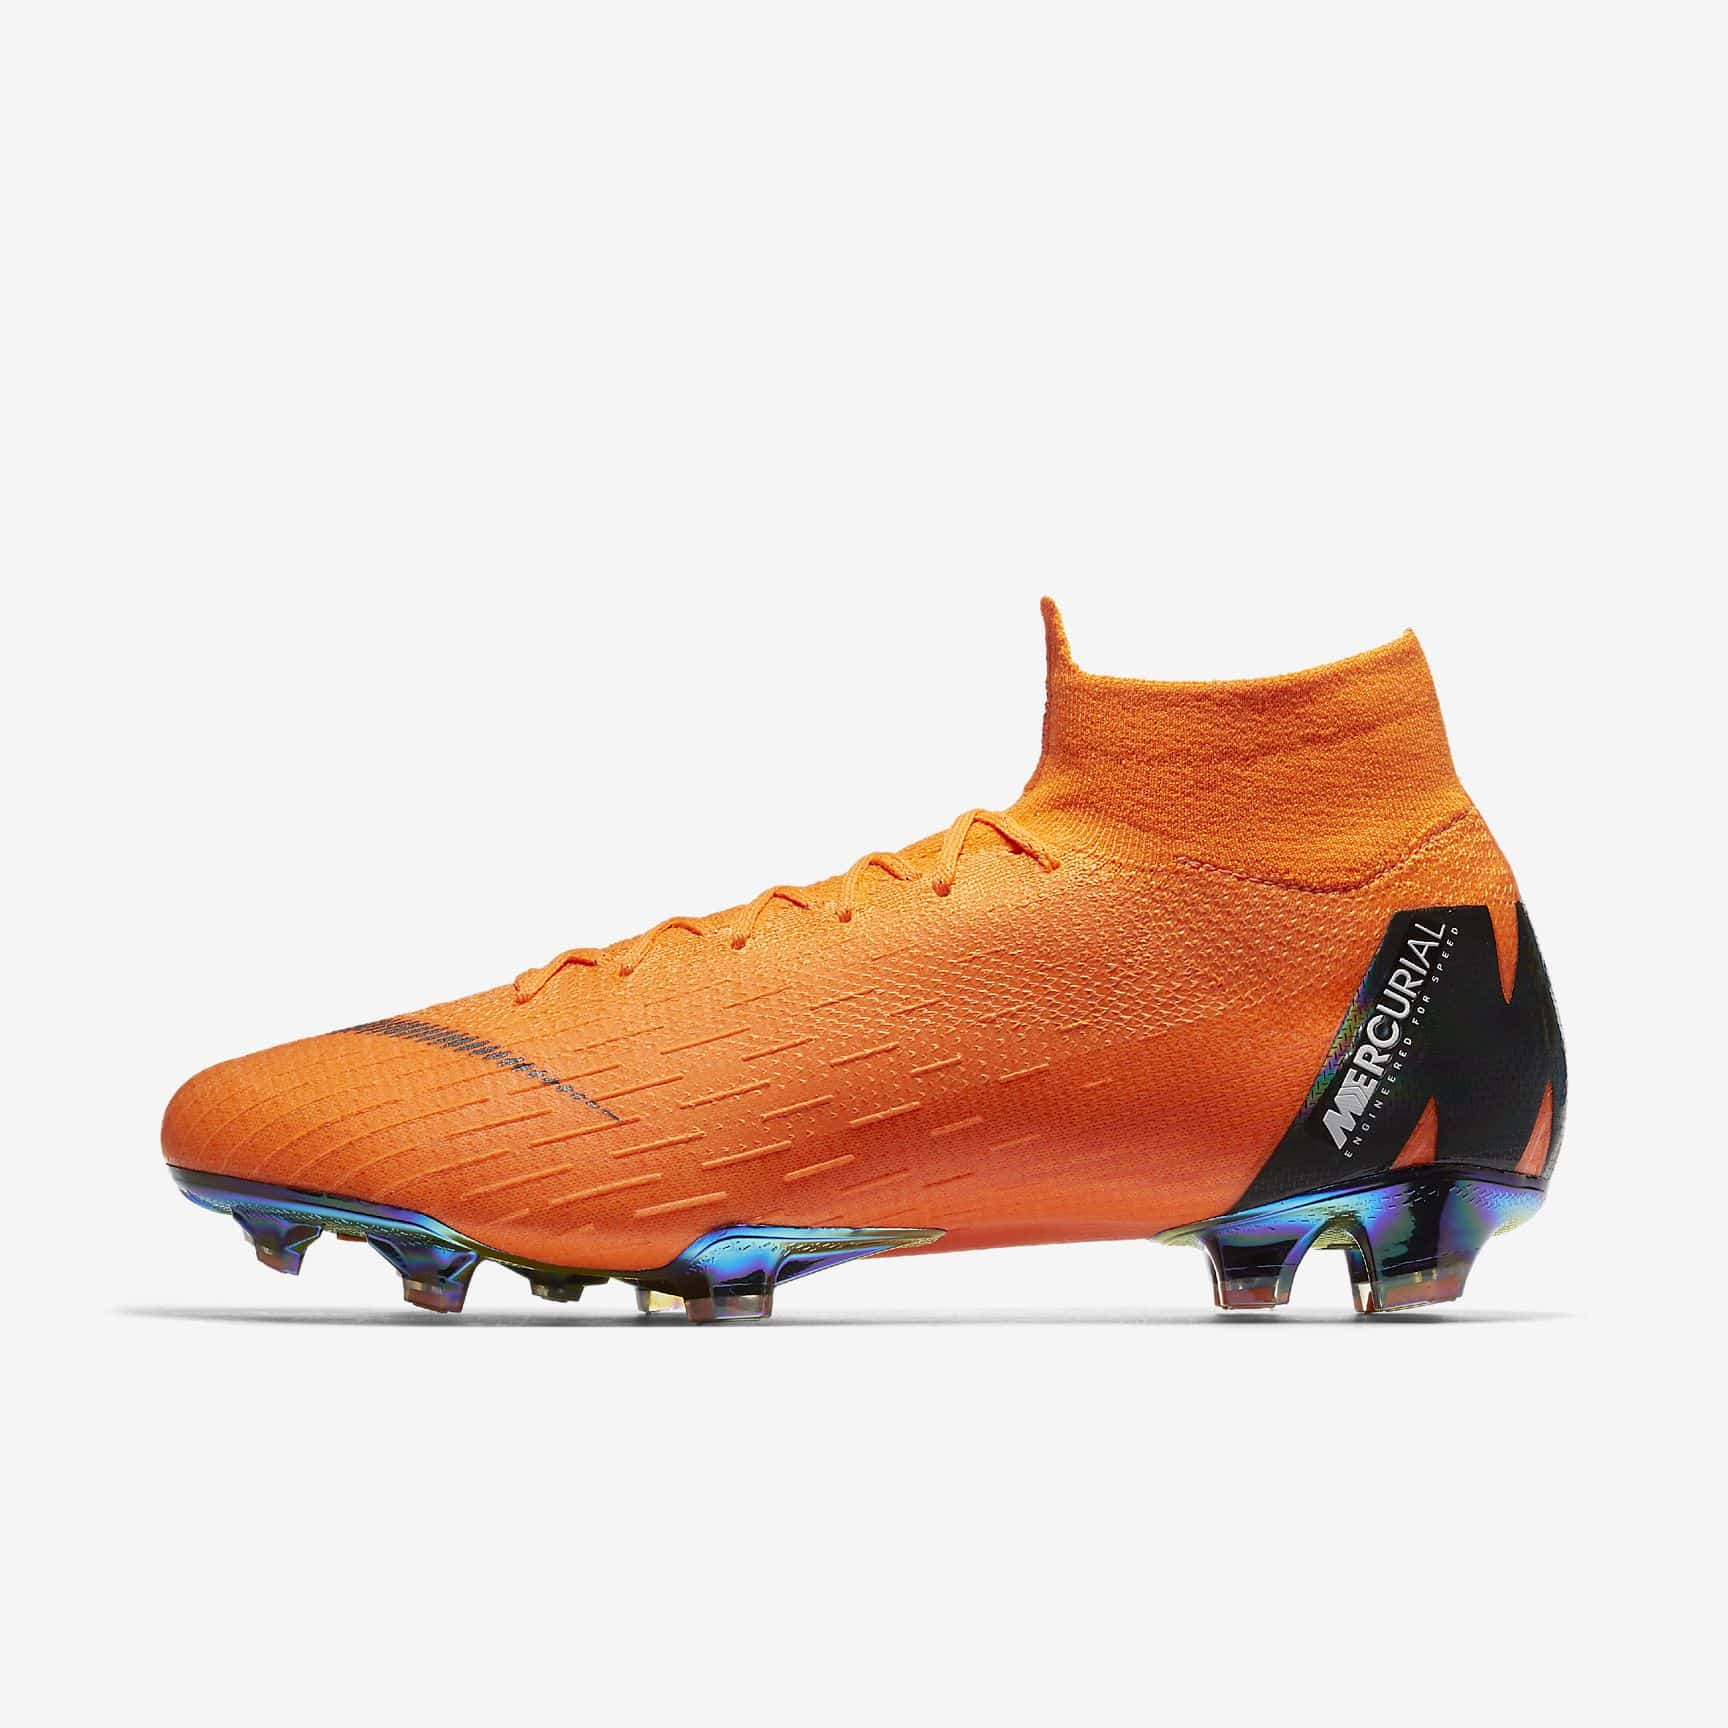 best website 779f7 233e6 chaussures-football-Nike-Mercurial-Superfly-XI-Elite-img1